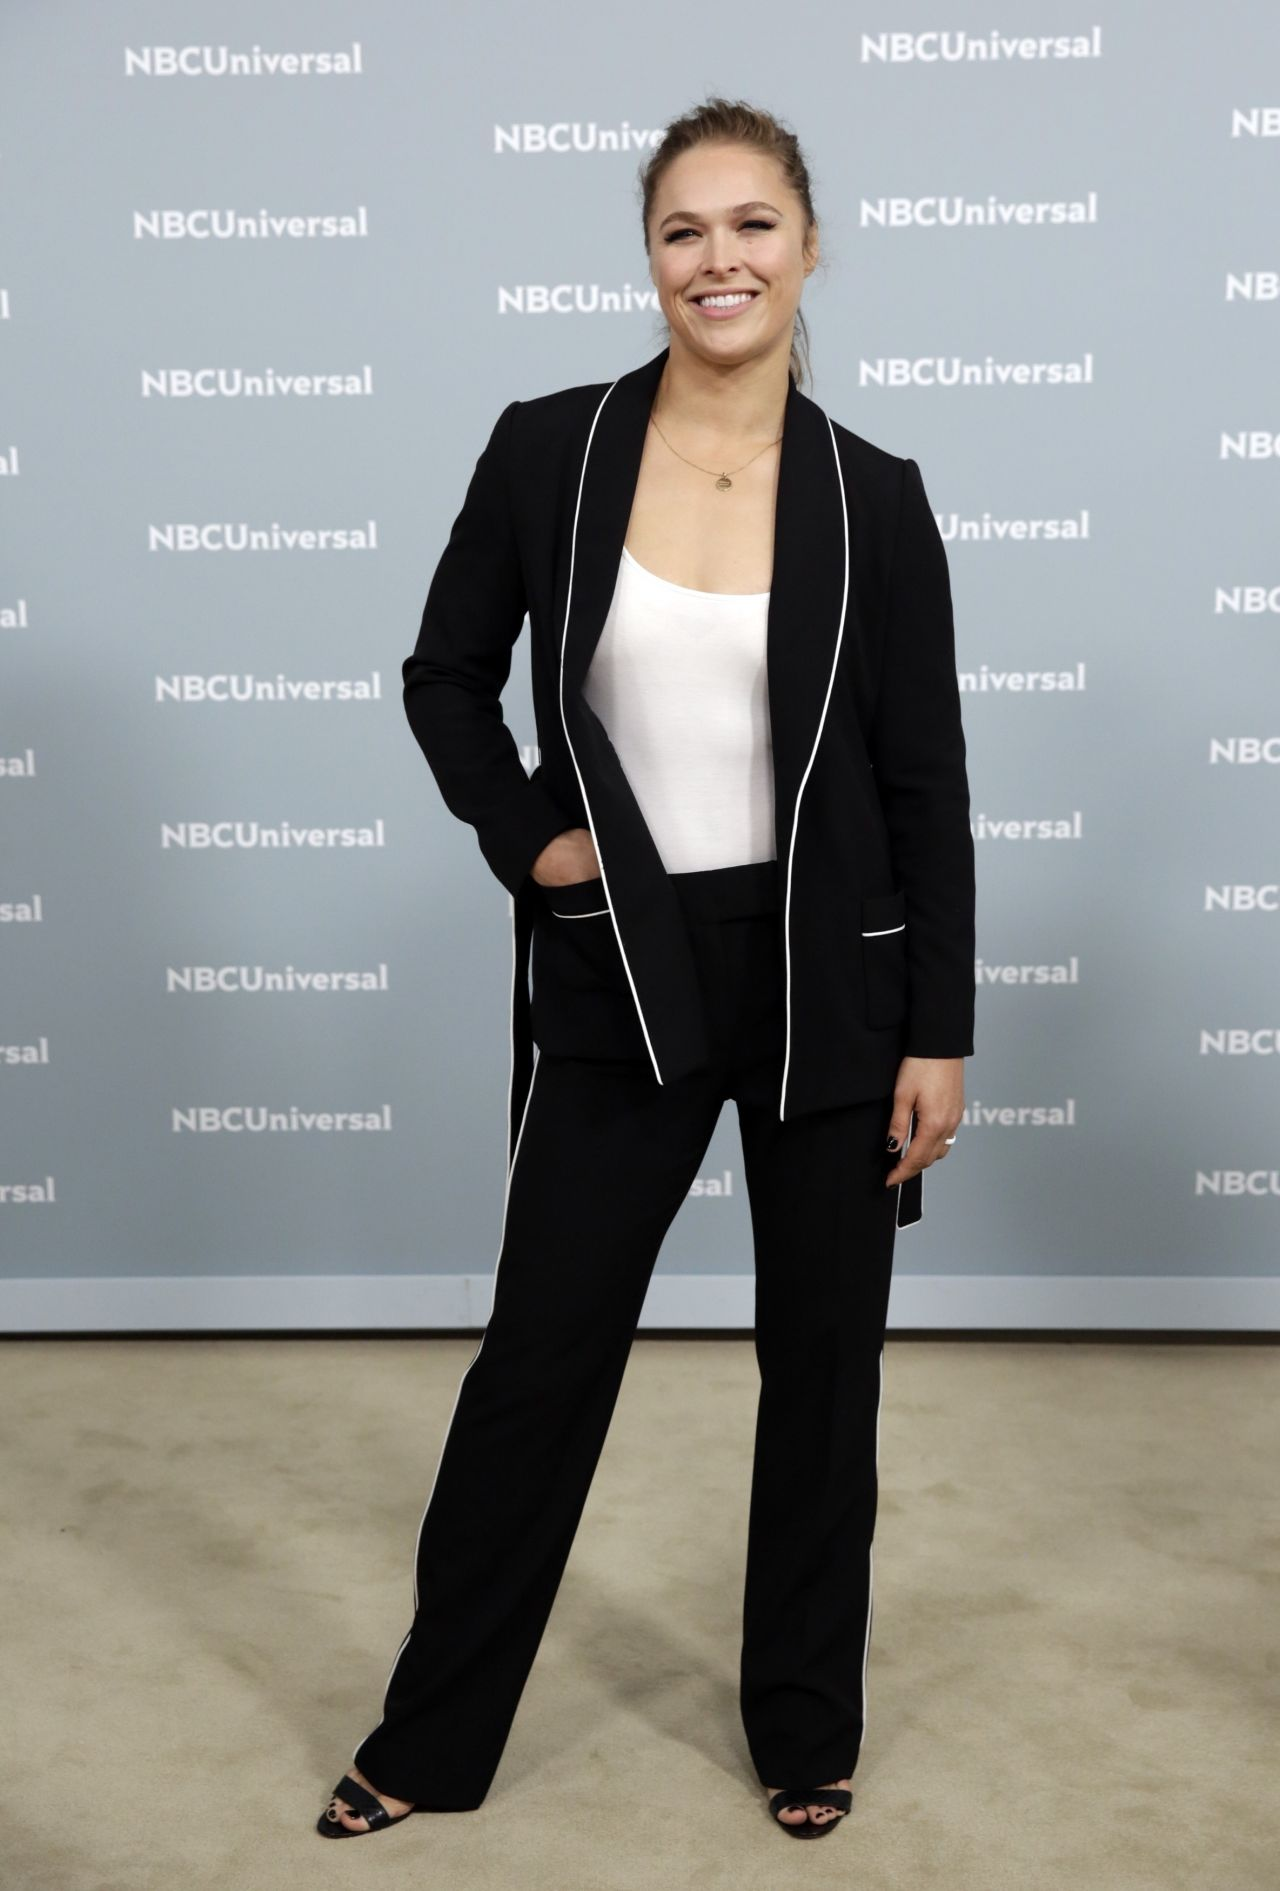 Ronda Rousey 2018 Nbcuniversal Upfront In Nyc